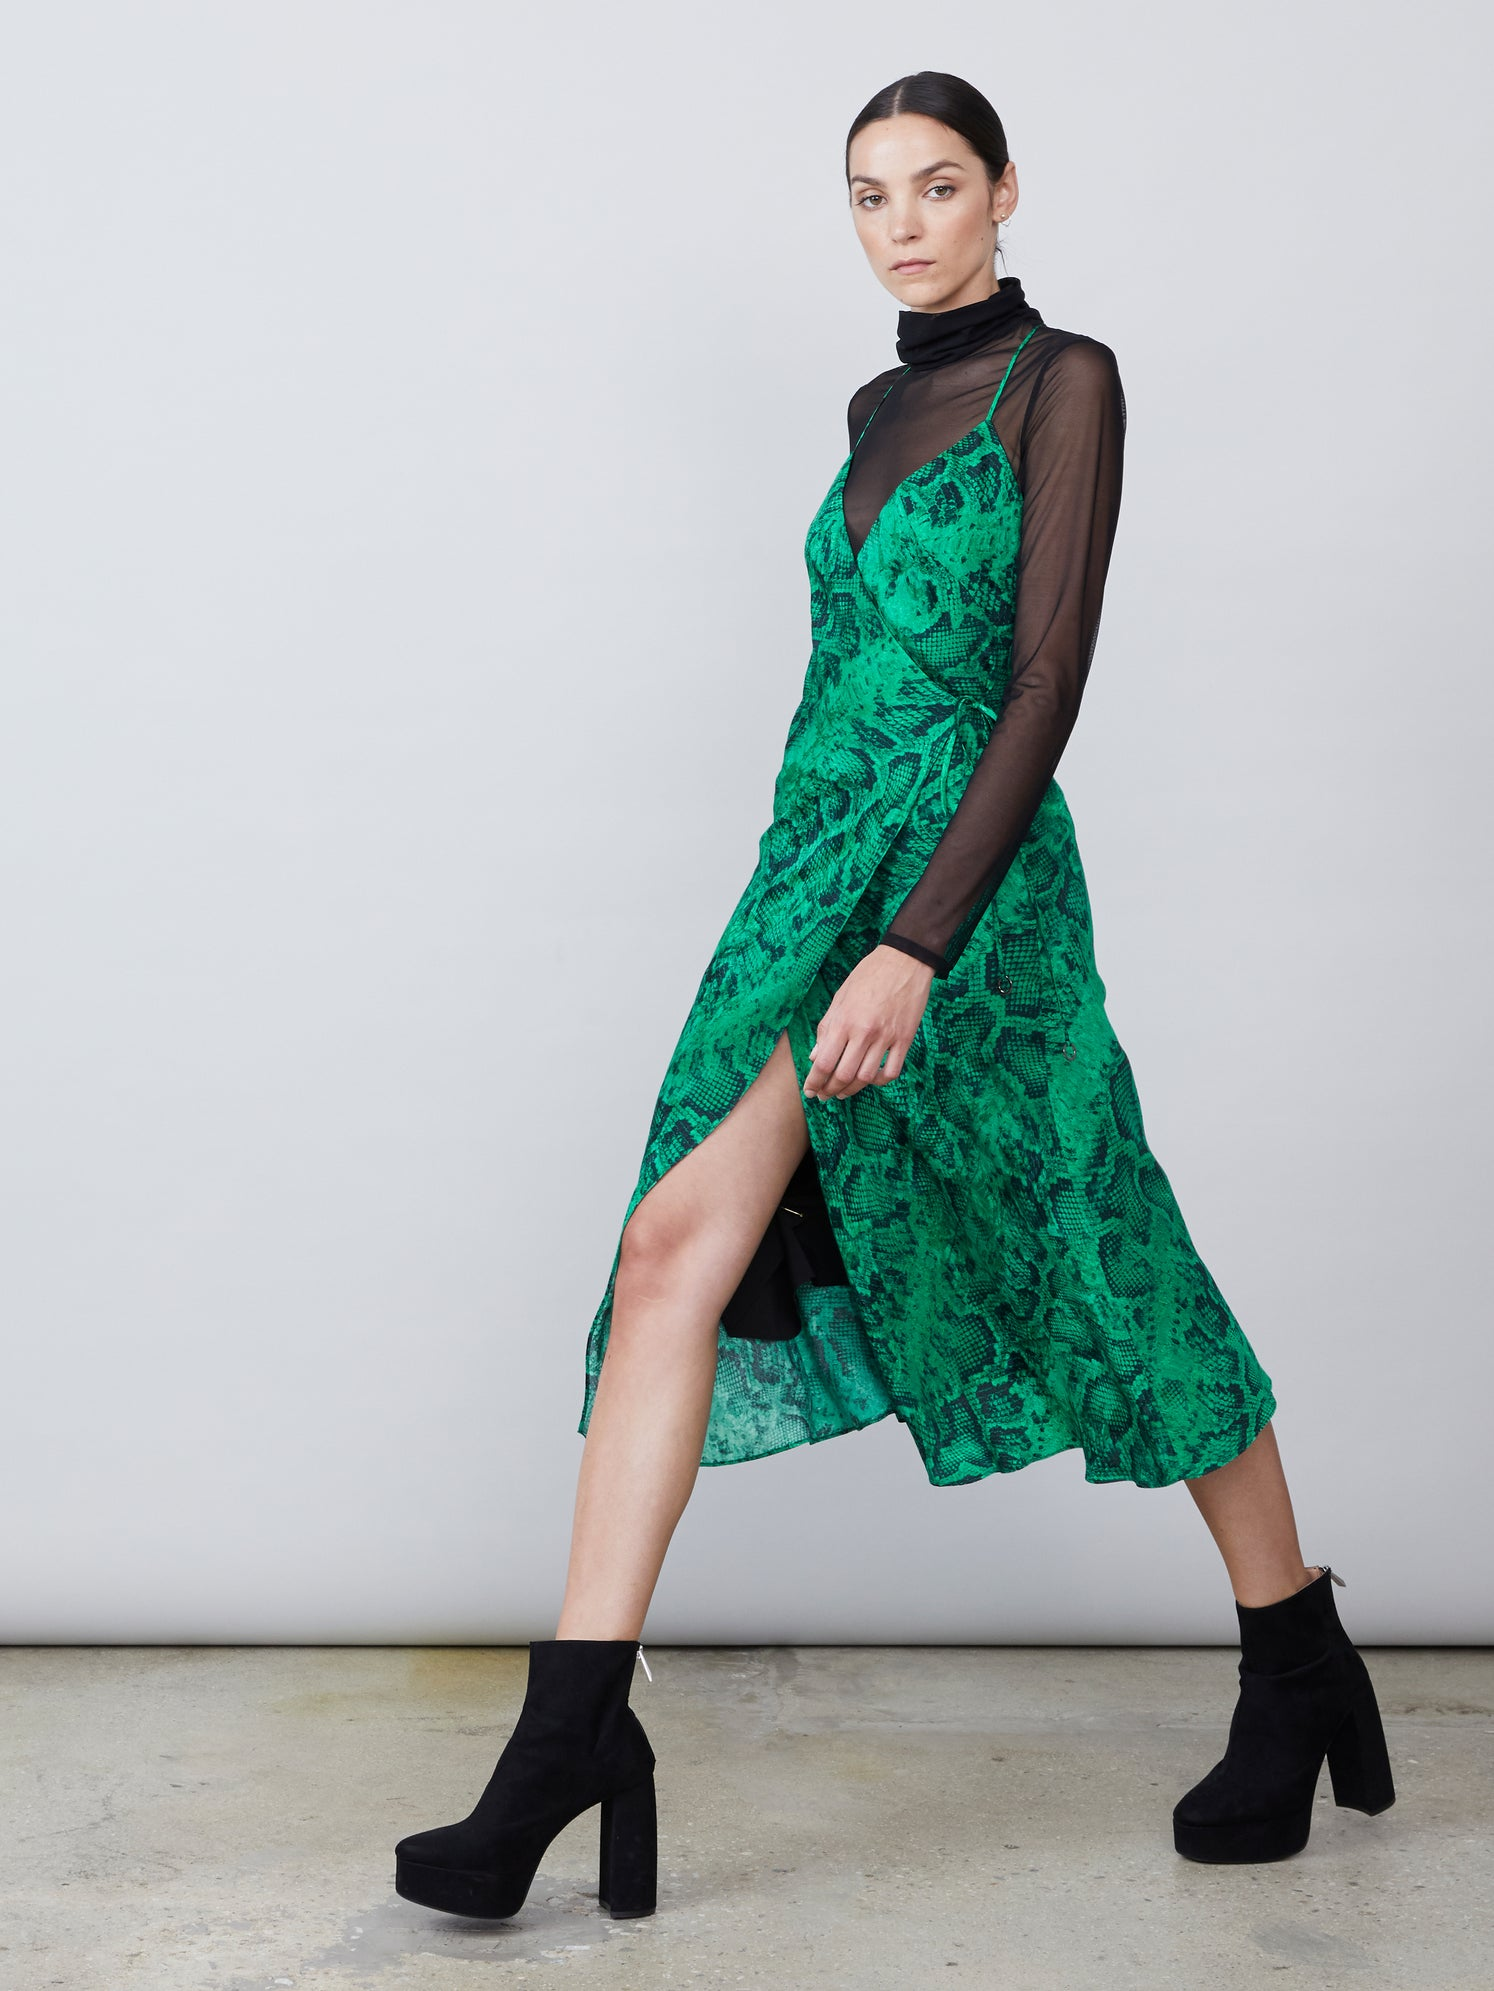 Jacquard snake print v neck dress with sheer turtleneck Alternate